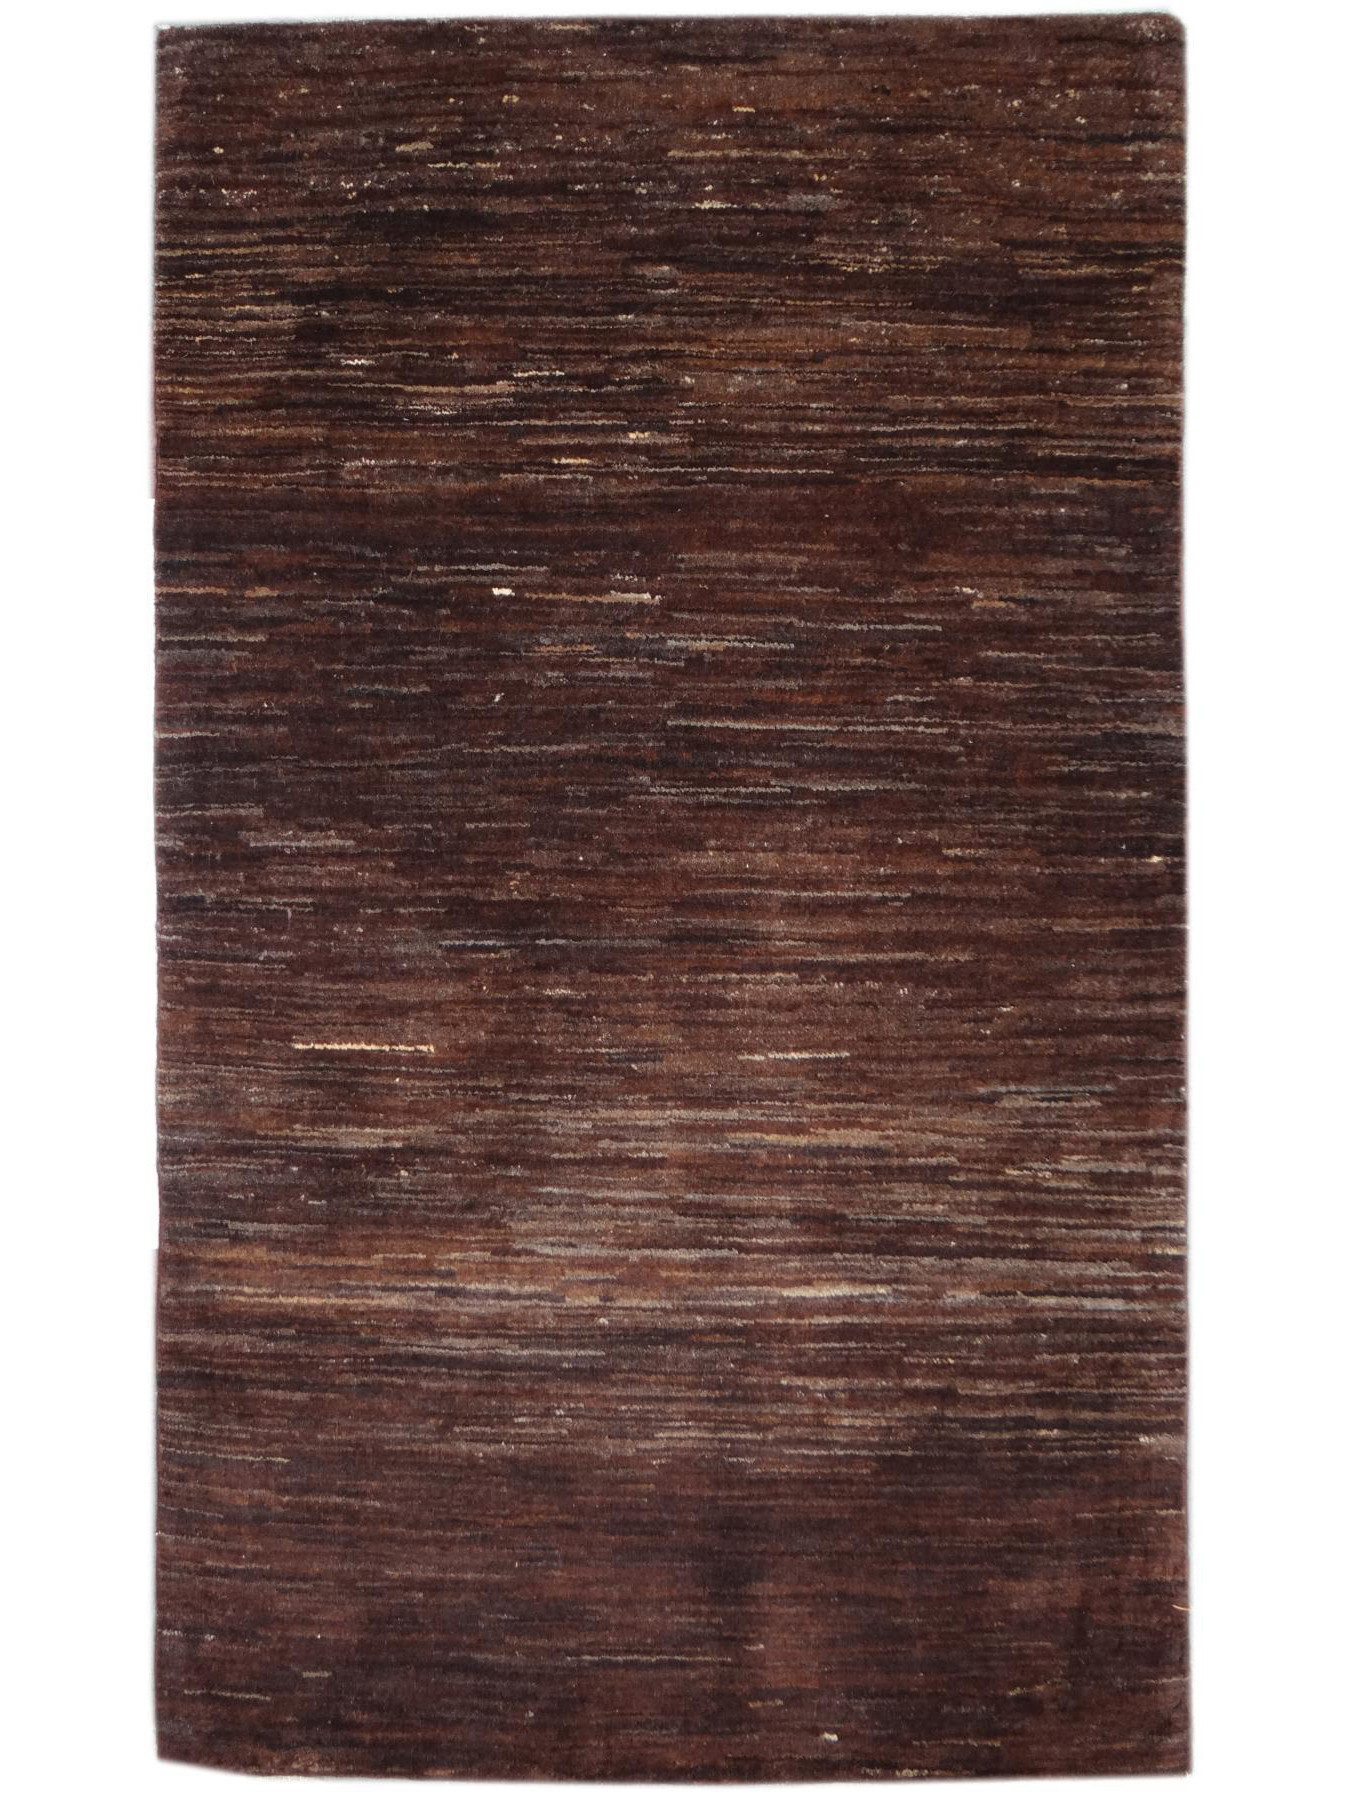 Ethnic carpets - TIMUR-EMOTION ABRASH DARK BROWN